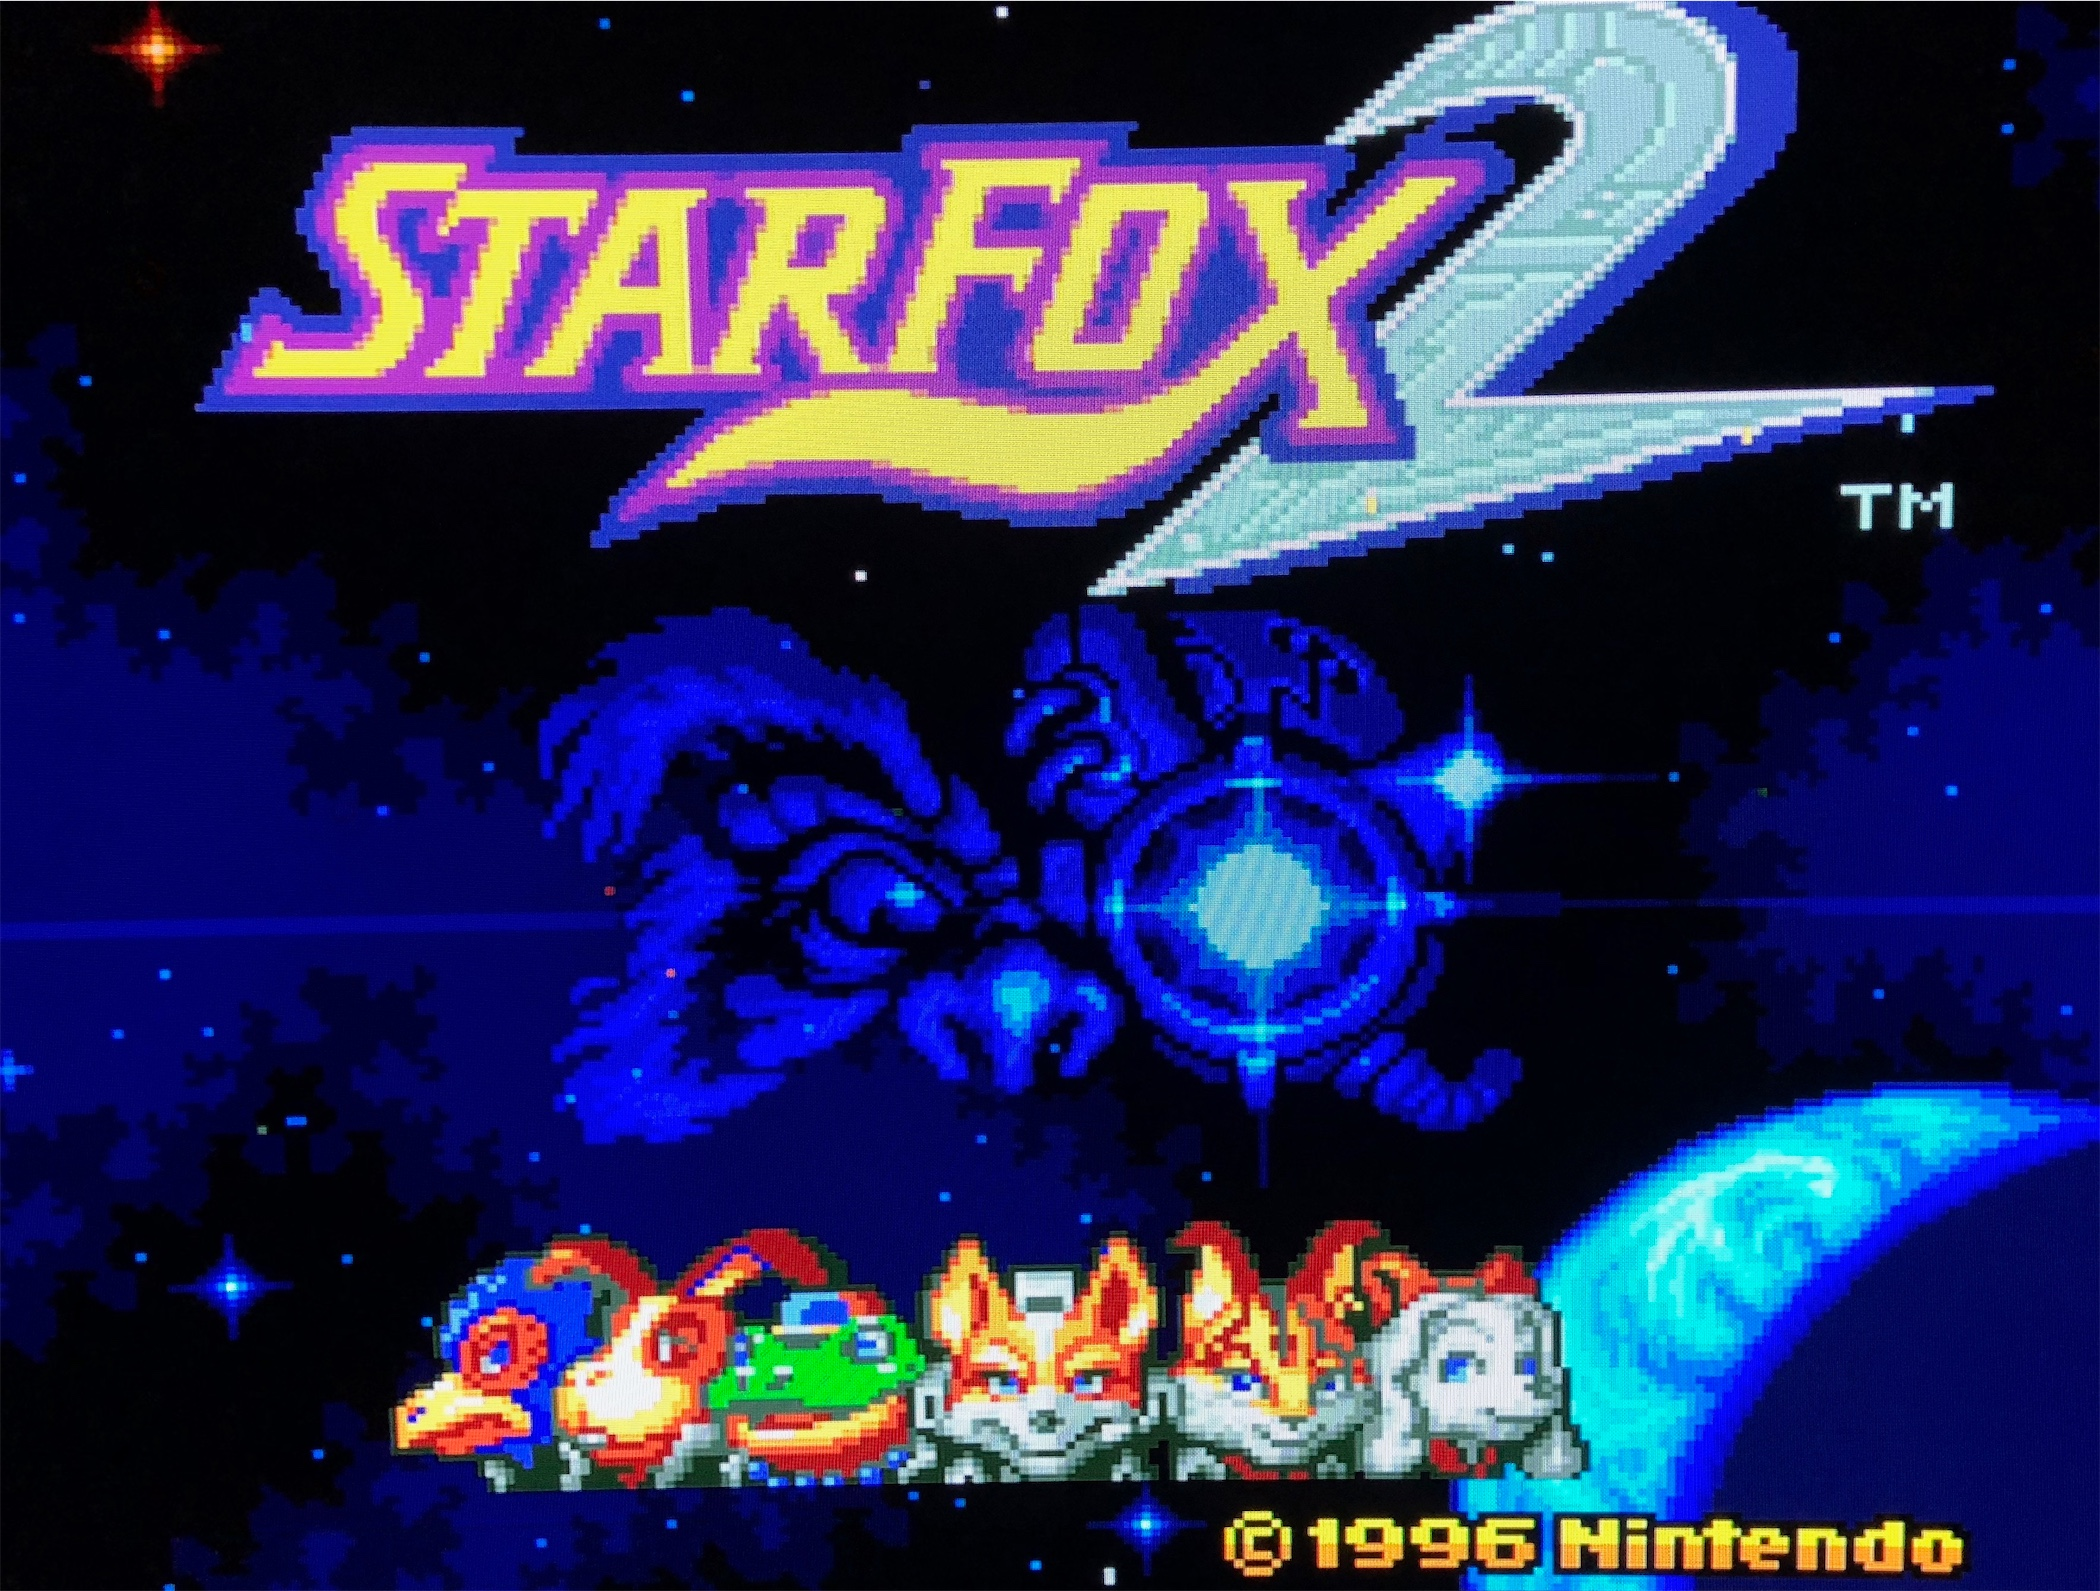 chris_1_Star Fox 2.jpeg